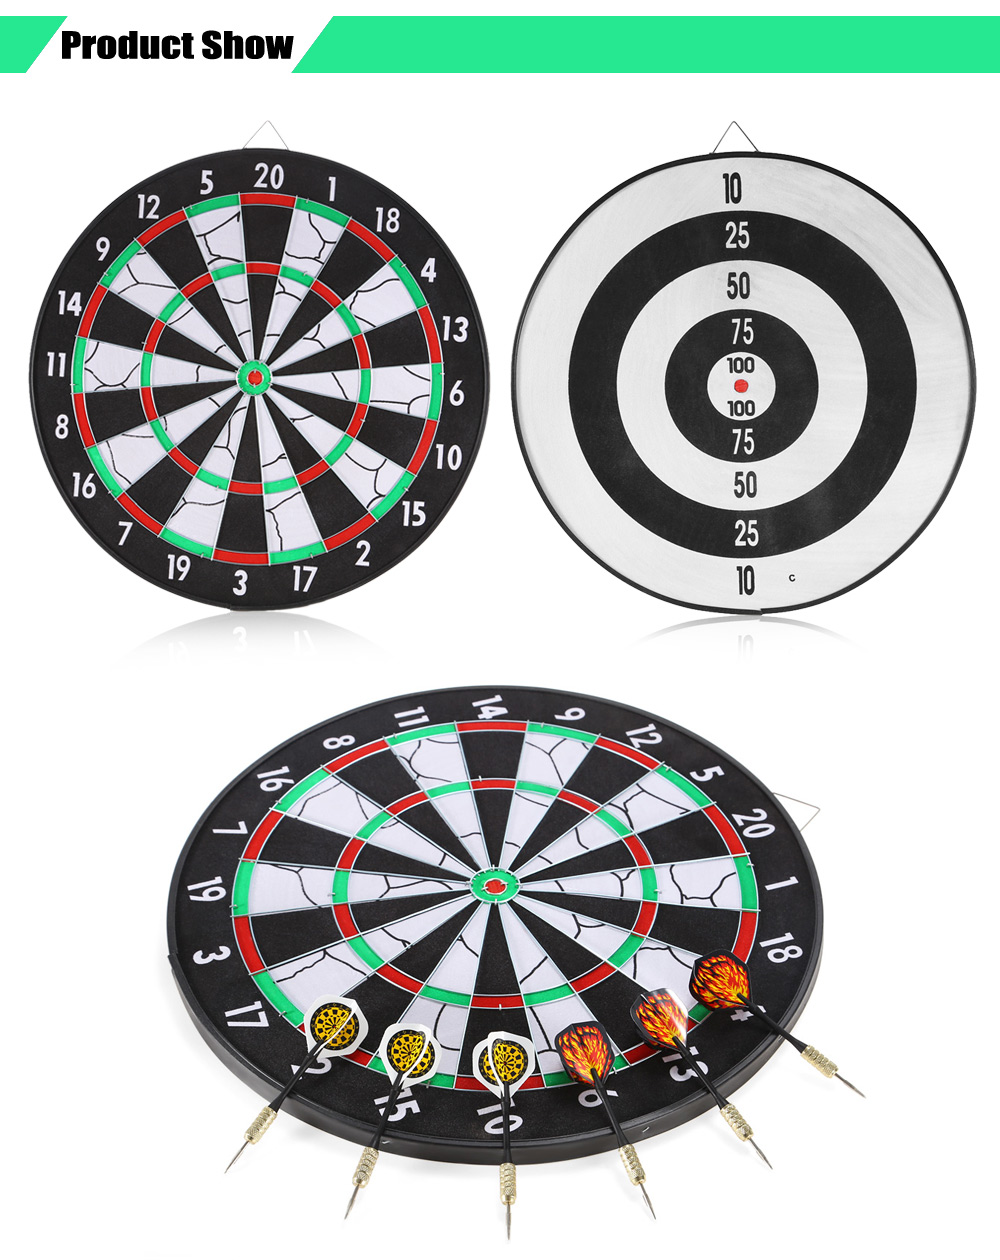 JOEREX JD6081 17 inch Flocked Dartboard Set Including 6pcs Darts 1 Dart Board